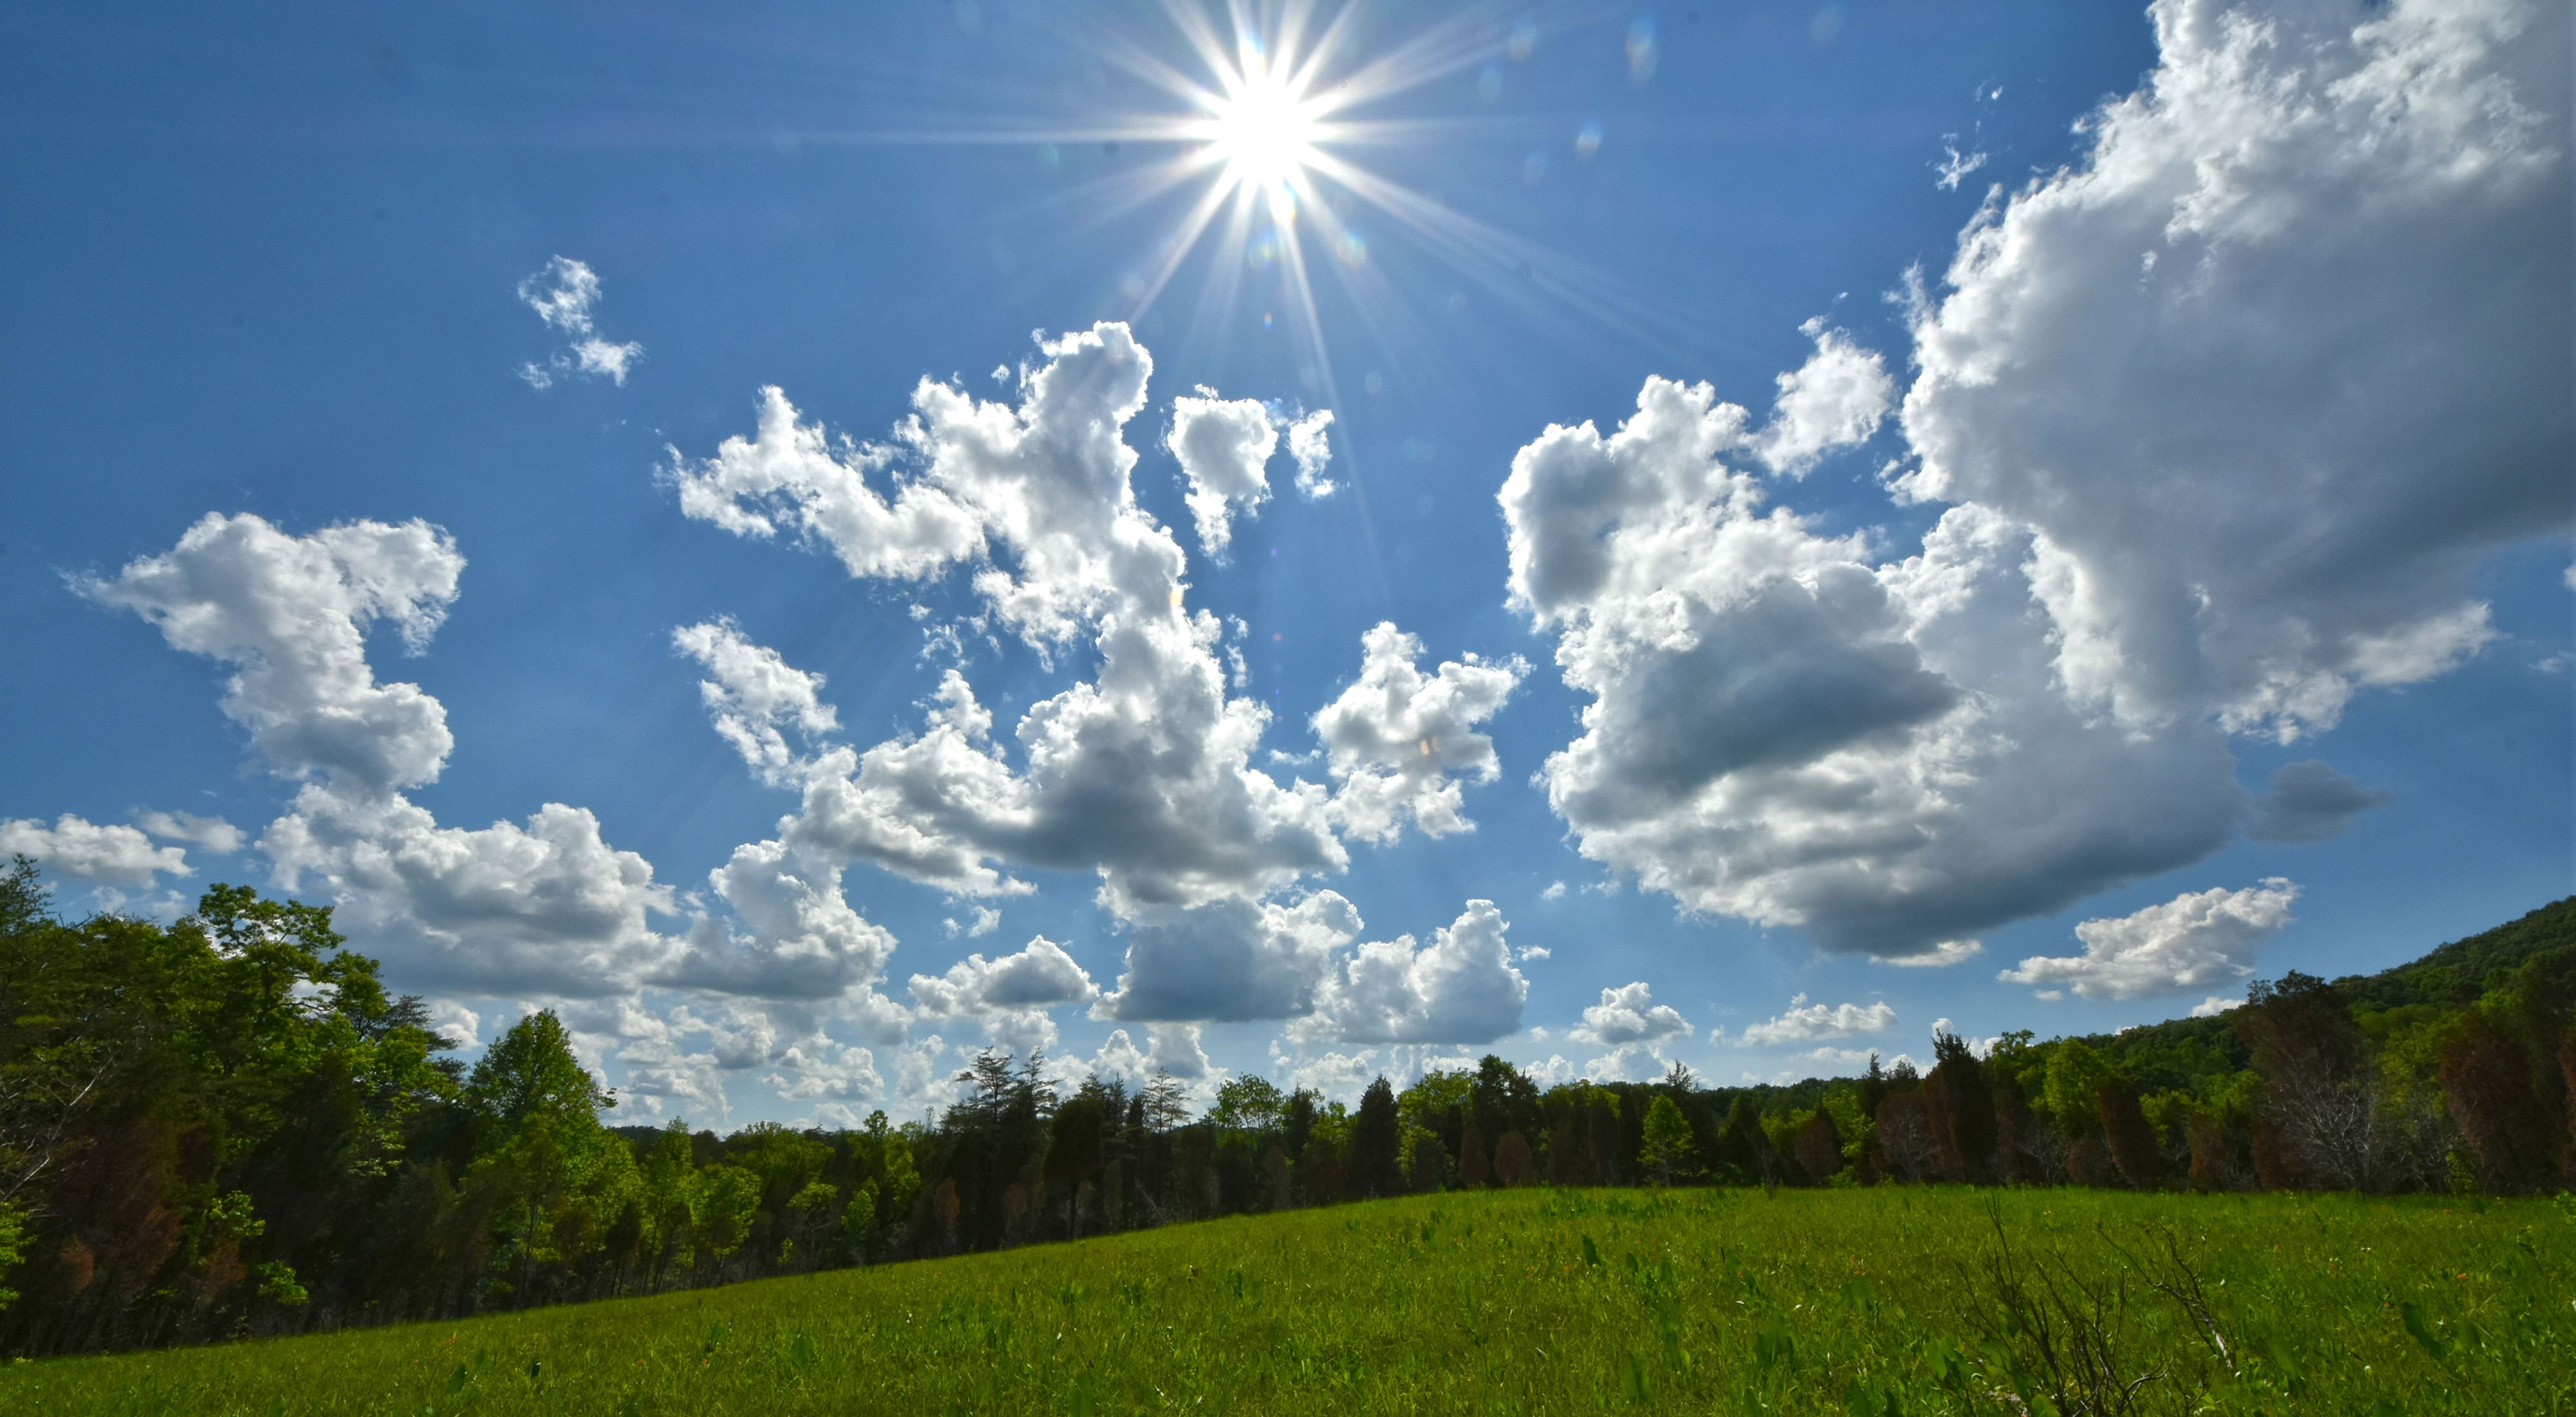 A bright sun shines down on an open grassy field lined by trees in summer.